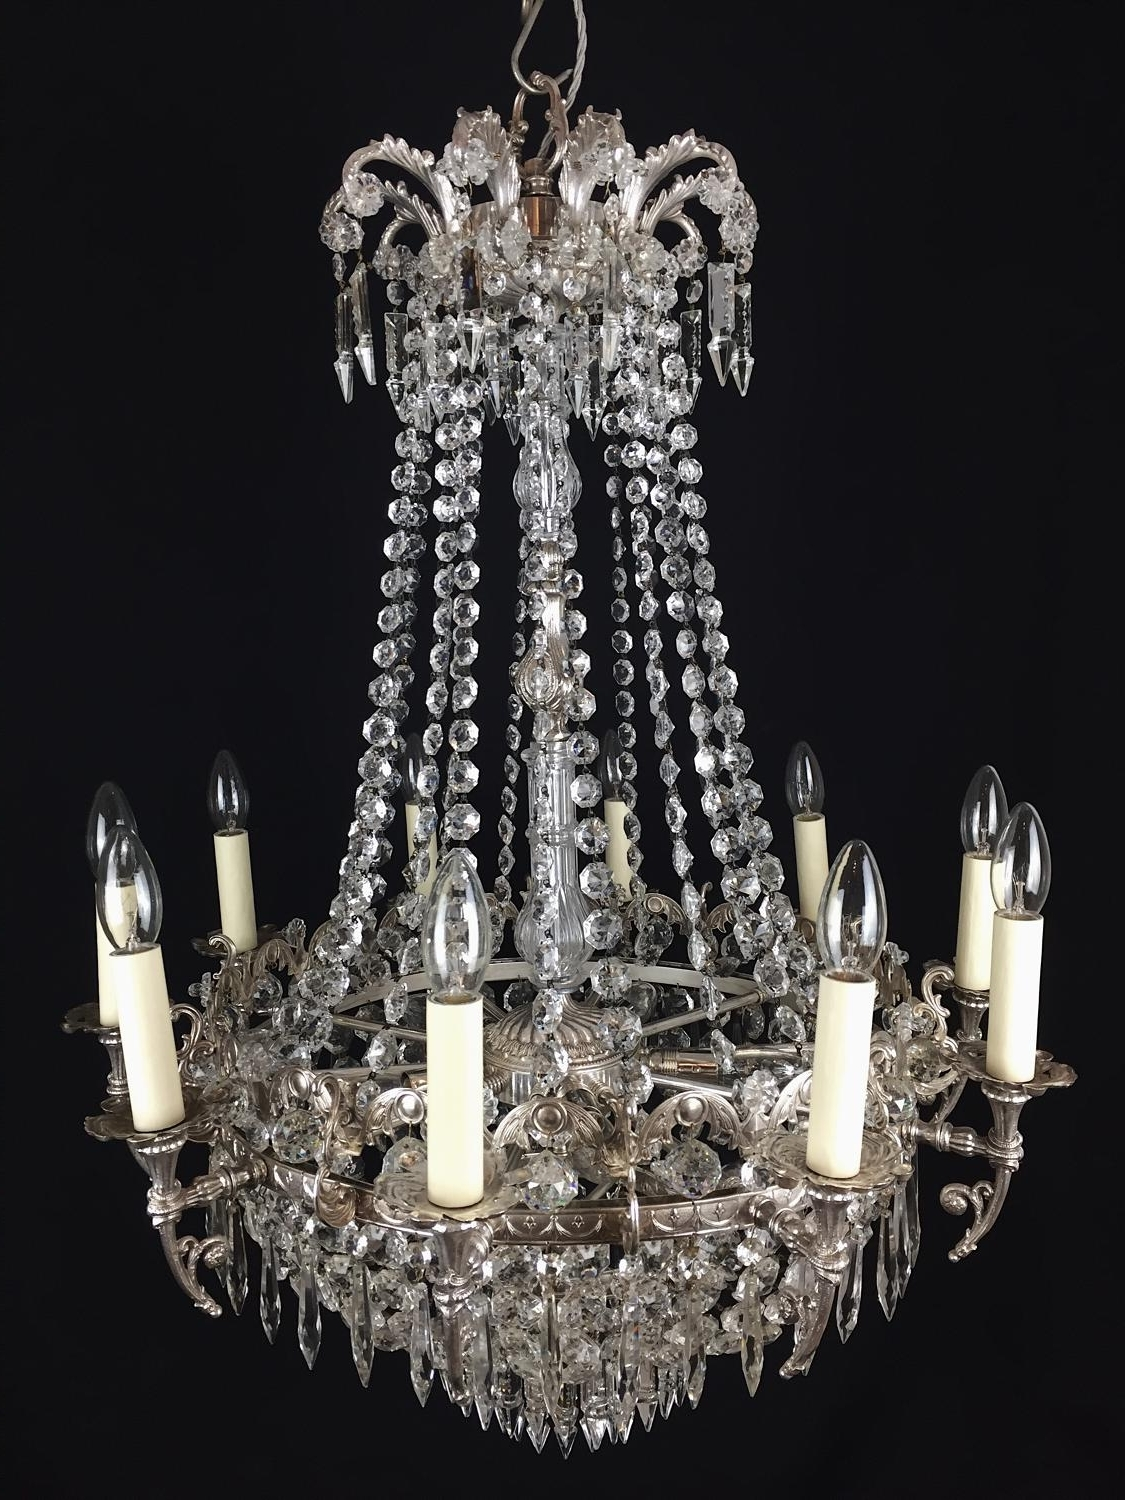 2019 Waterfall Chandeliers Regarding A Pair Of Silvered Brass, Waterfall Chandeliers In Chandeliers (View 2 of 20)